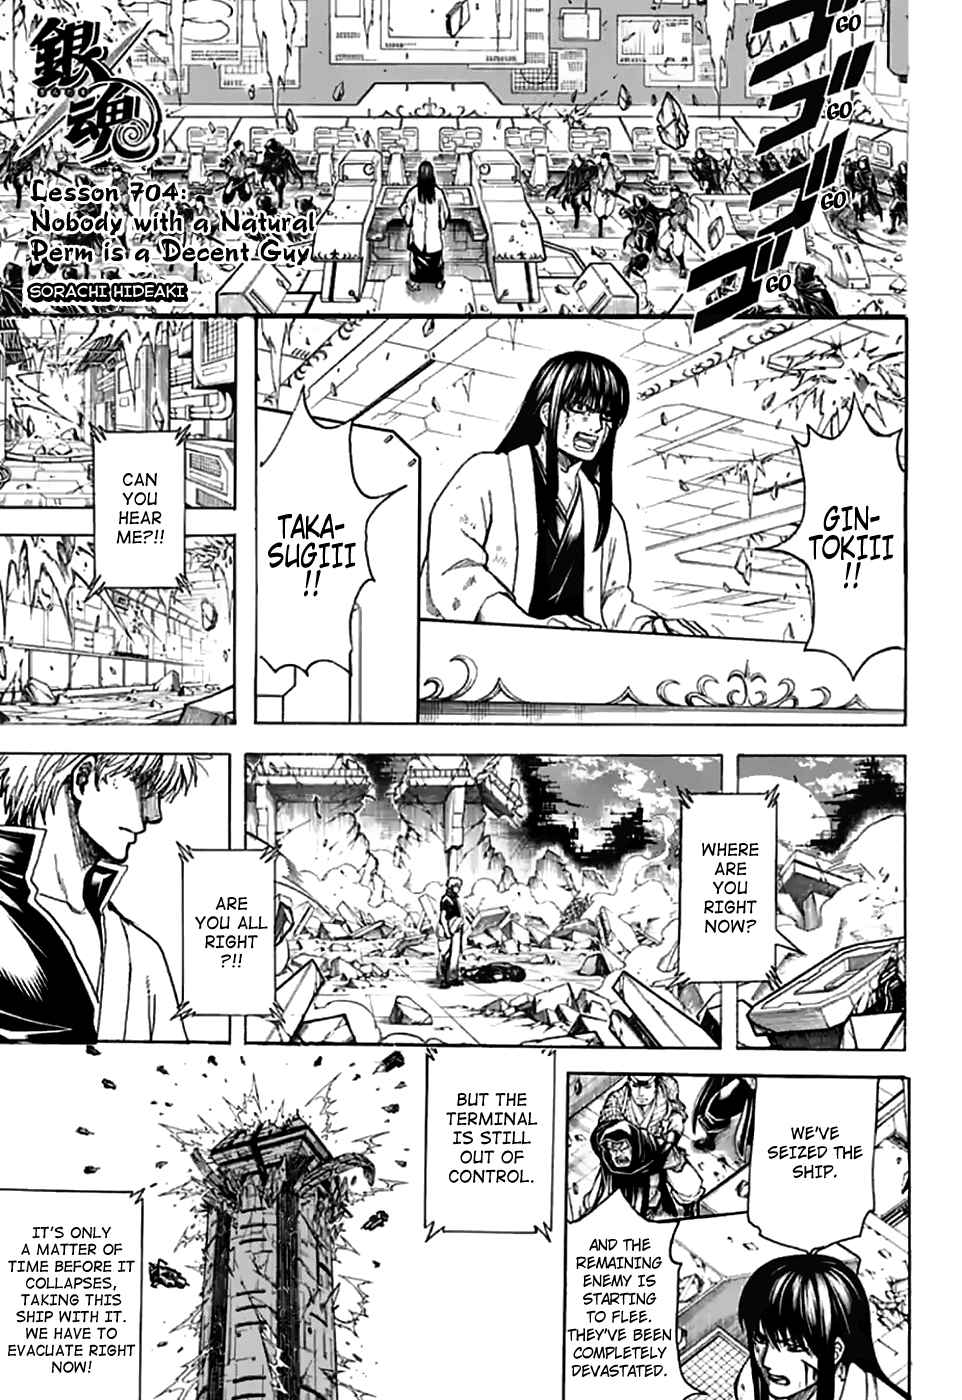 Gintama Vol. 77 Ch. 704 Nobody with a Natural Perm is a Decent Guy